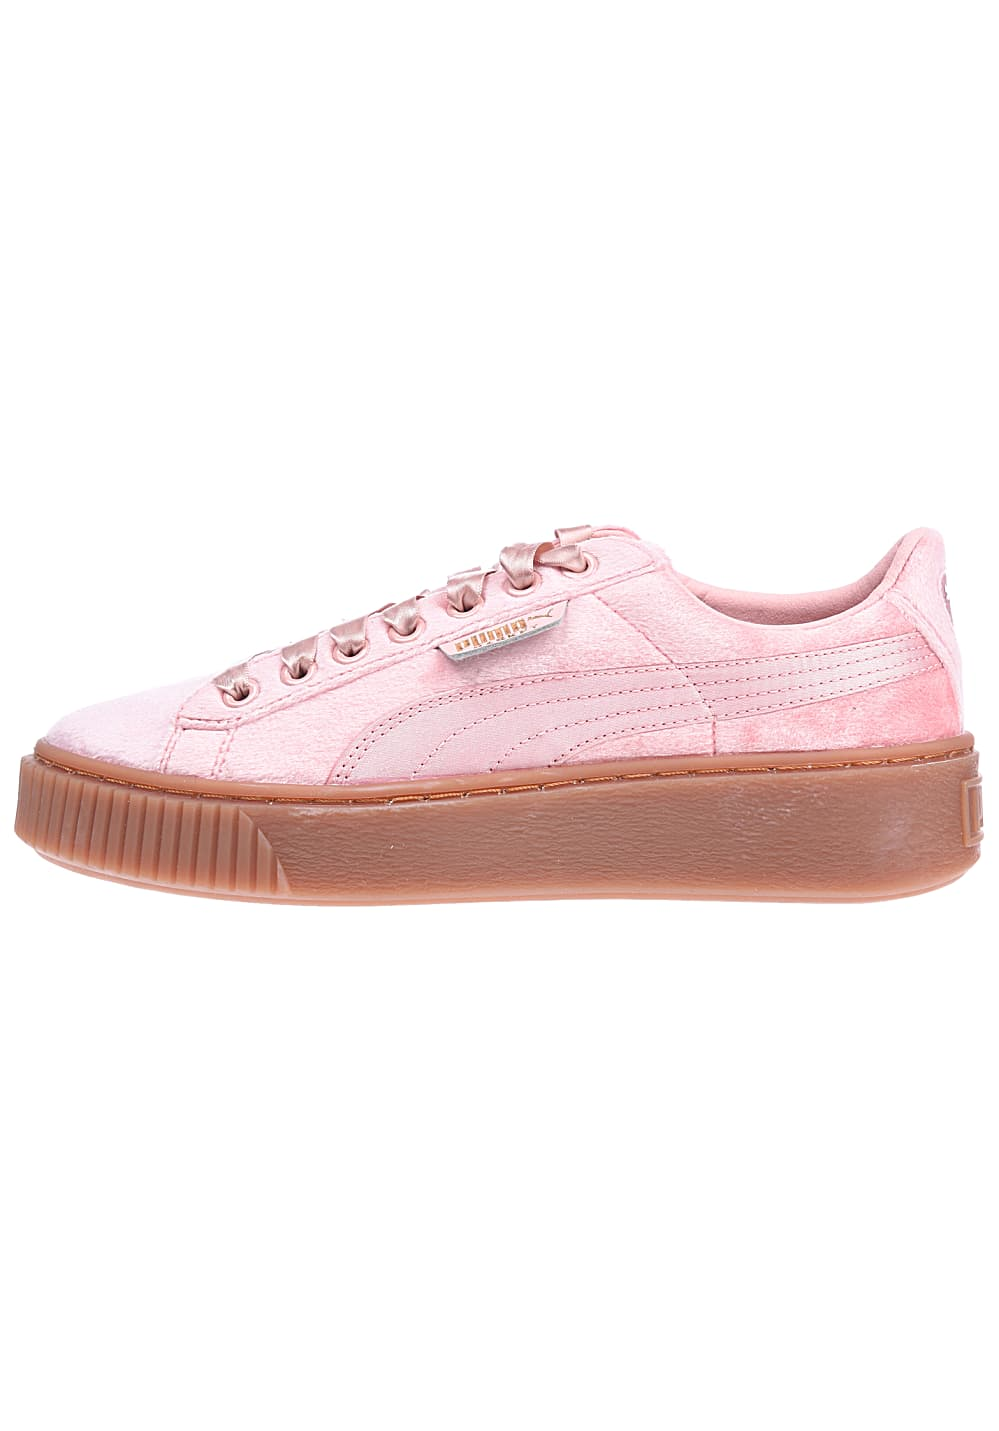 Puma Basket Platform VS - Sneaker für Damen - Pink - Planet Sports